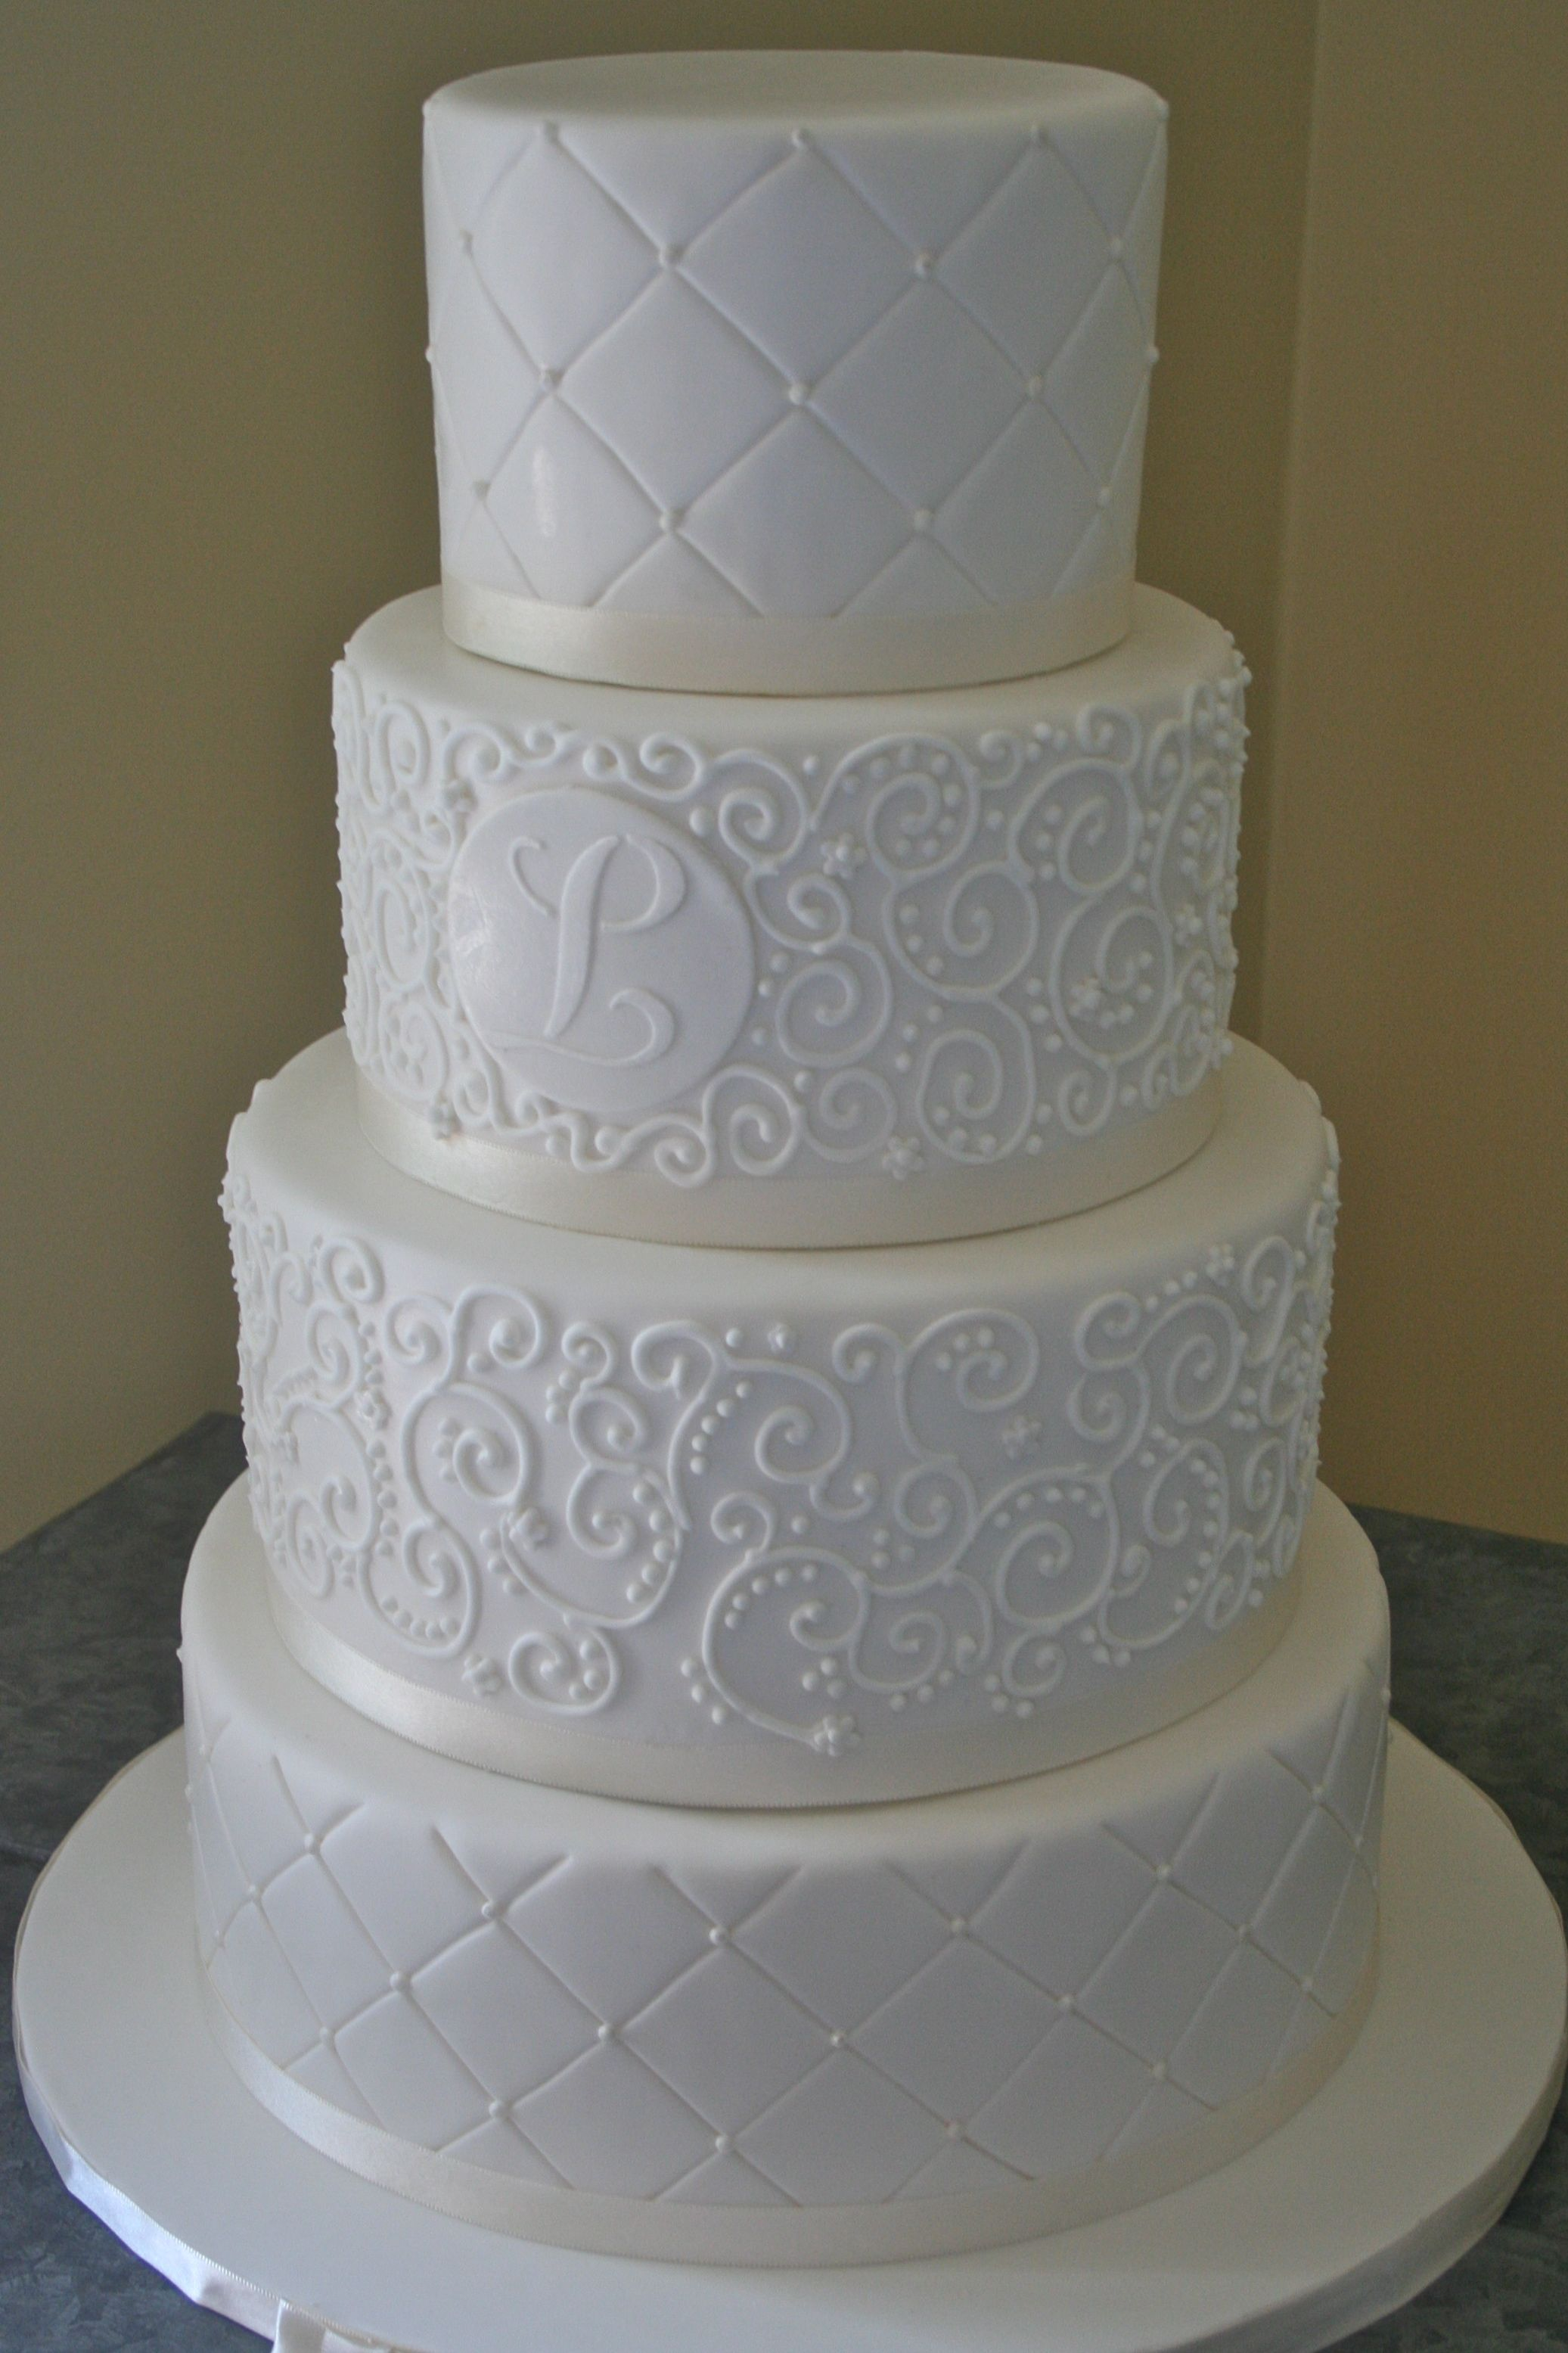 White-on-white wedding cake.  Created by Renay Zamora of Sweetface Cakes in Nashville, TN.